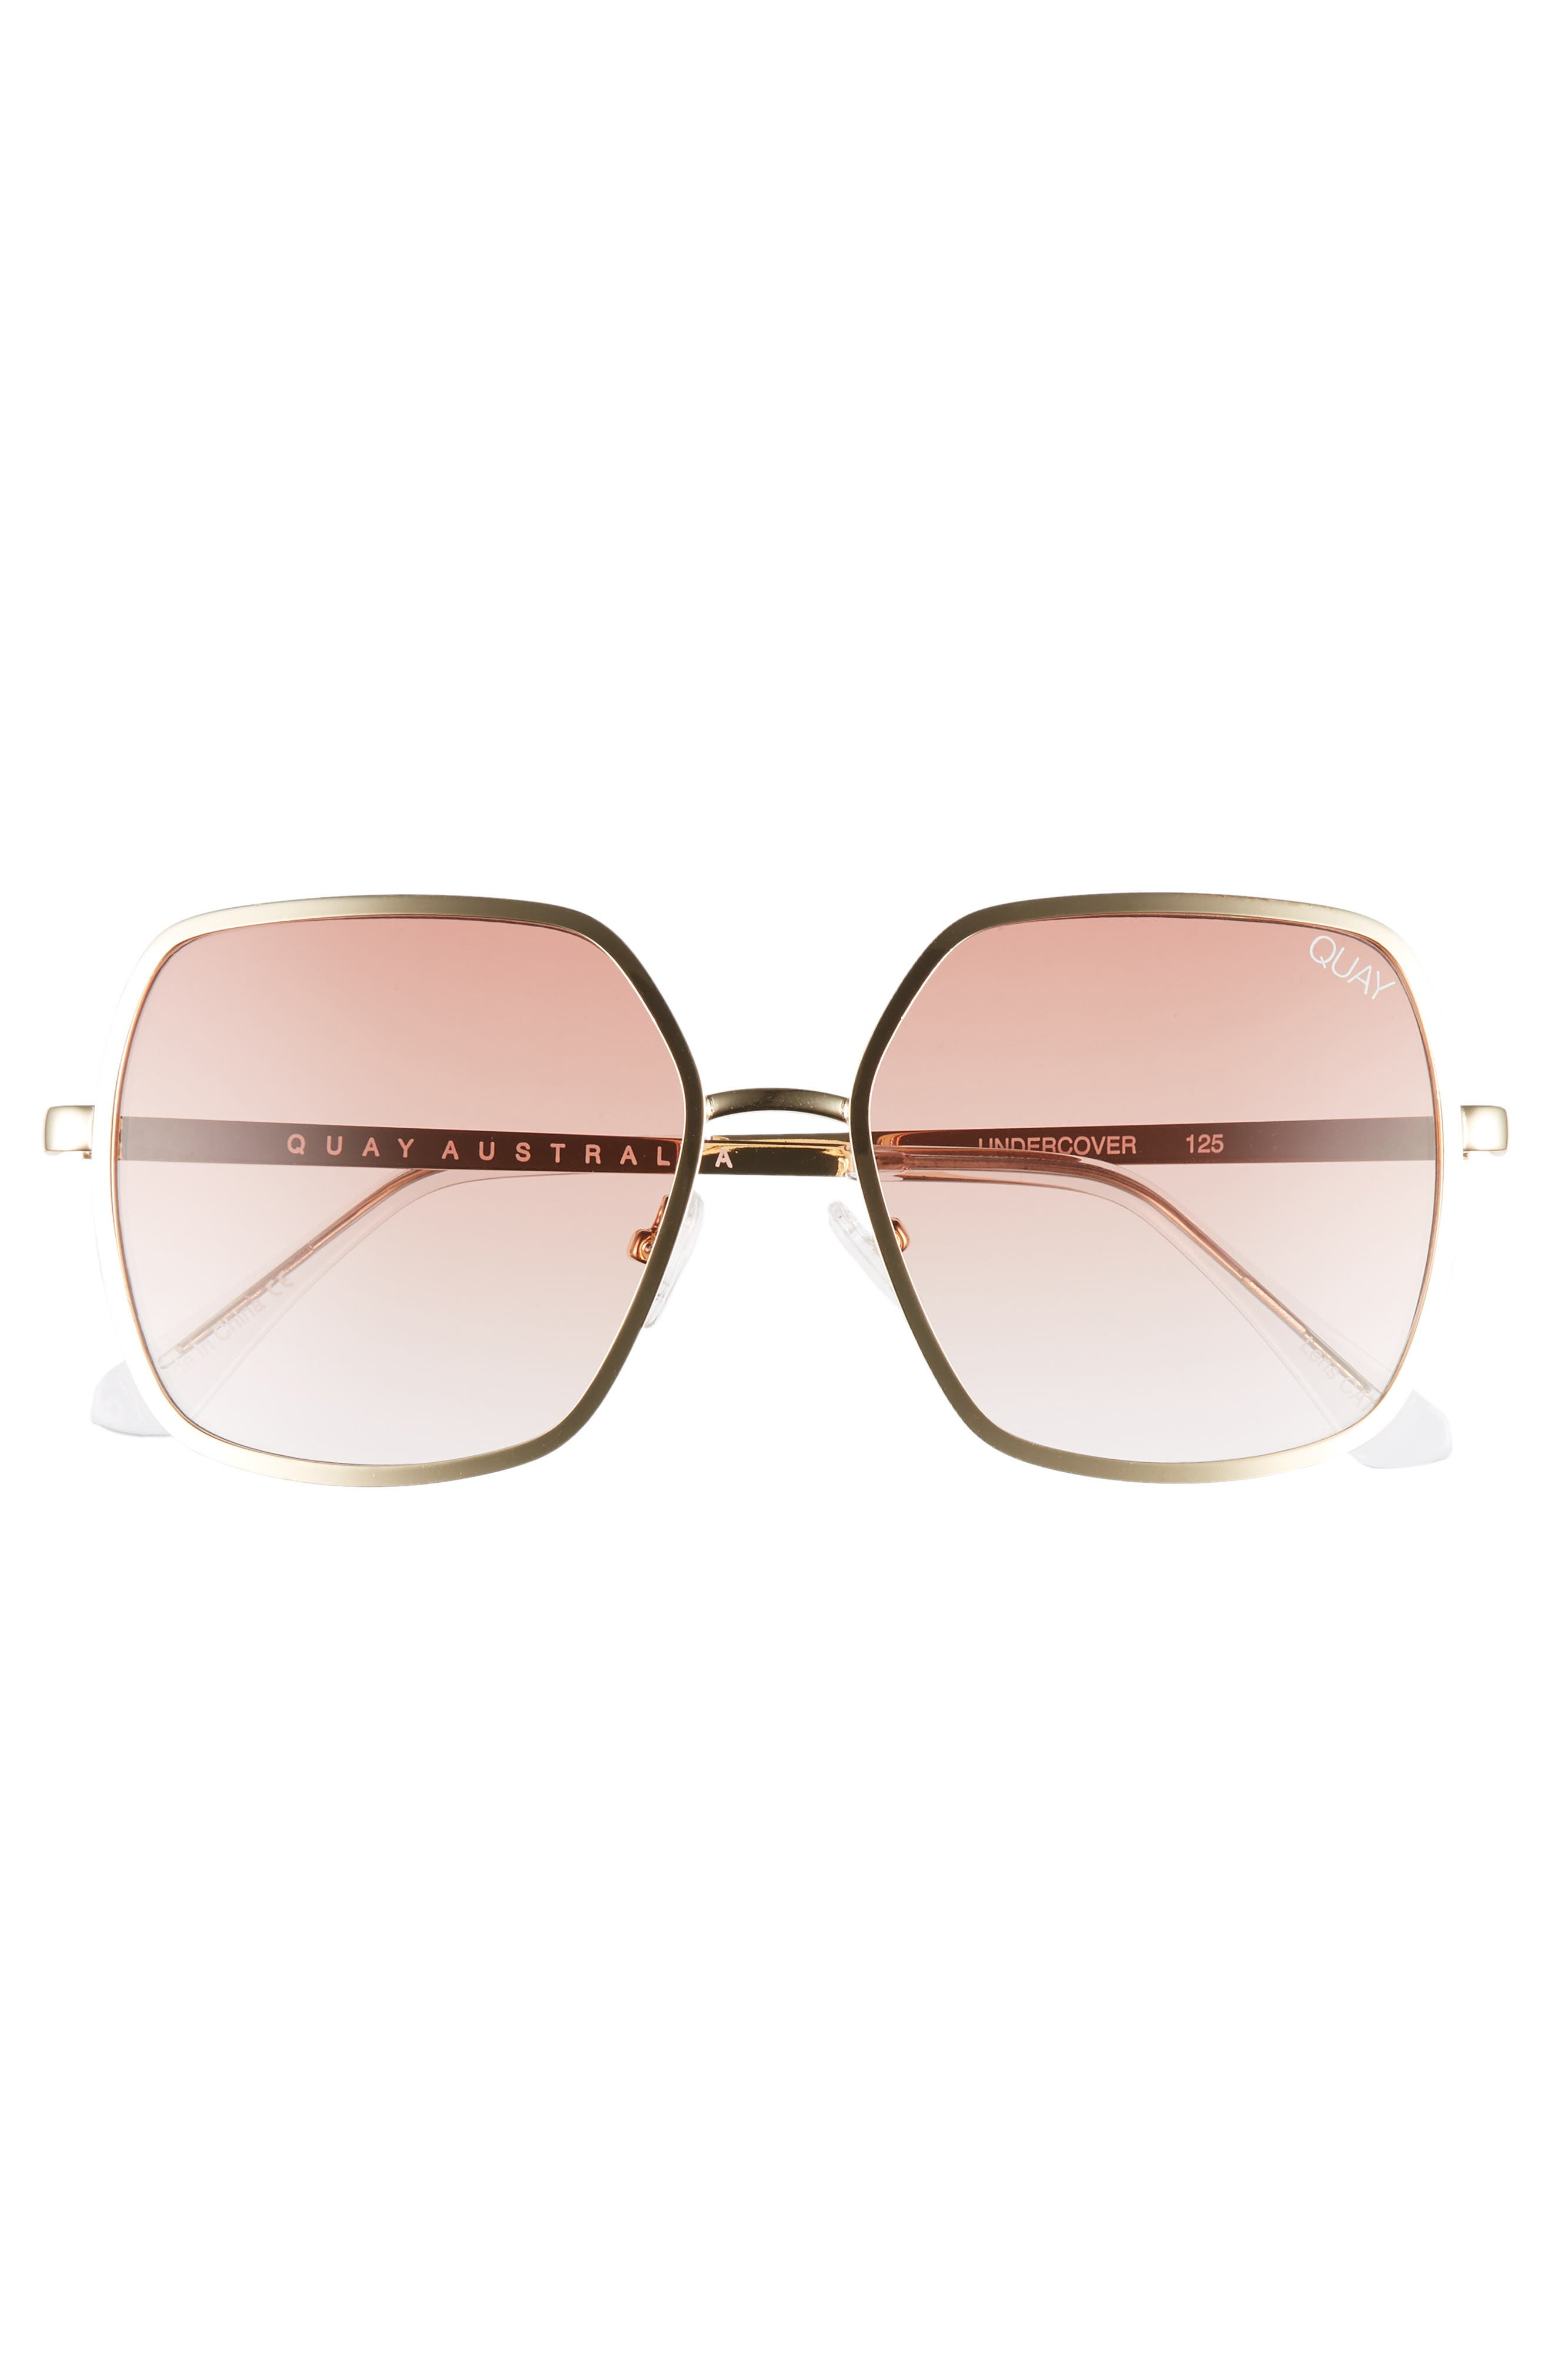 Undercover 57mm Square Sunglasses,                             Alternate thumbnail 3, color,                             GOLD/ PEACH